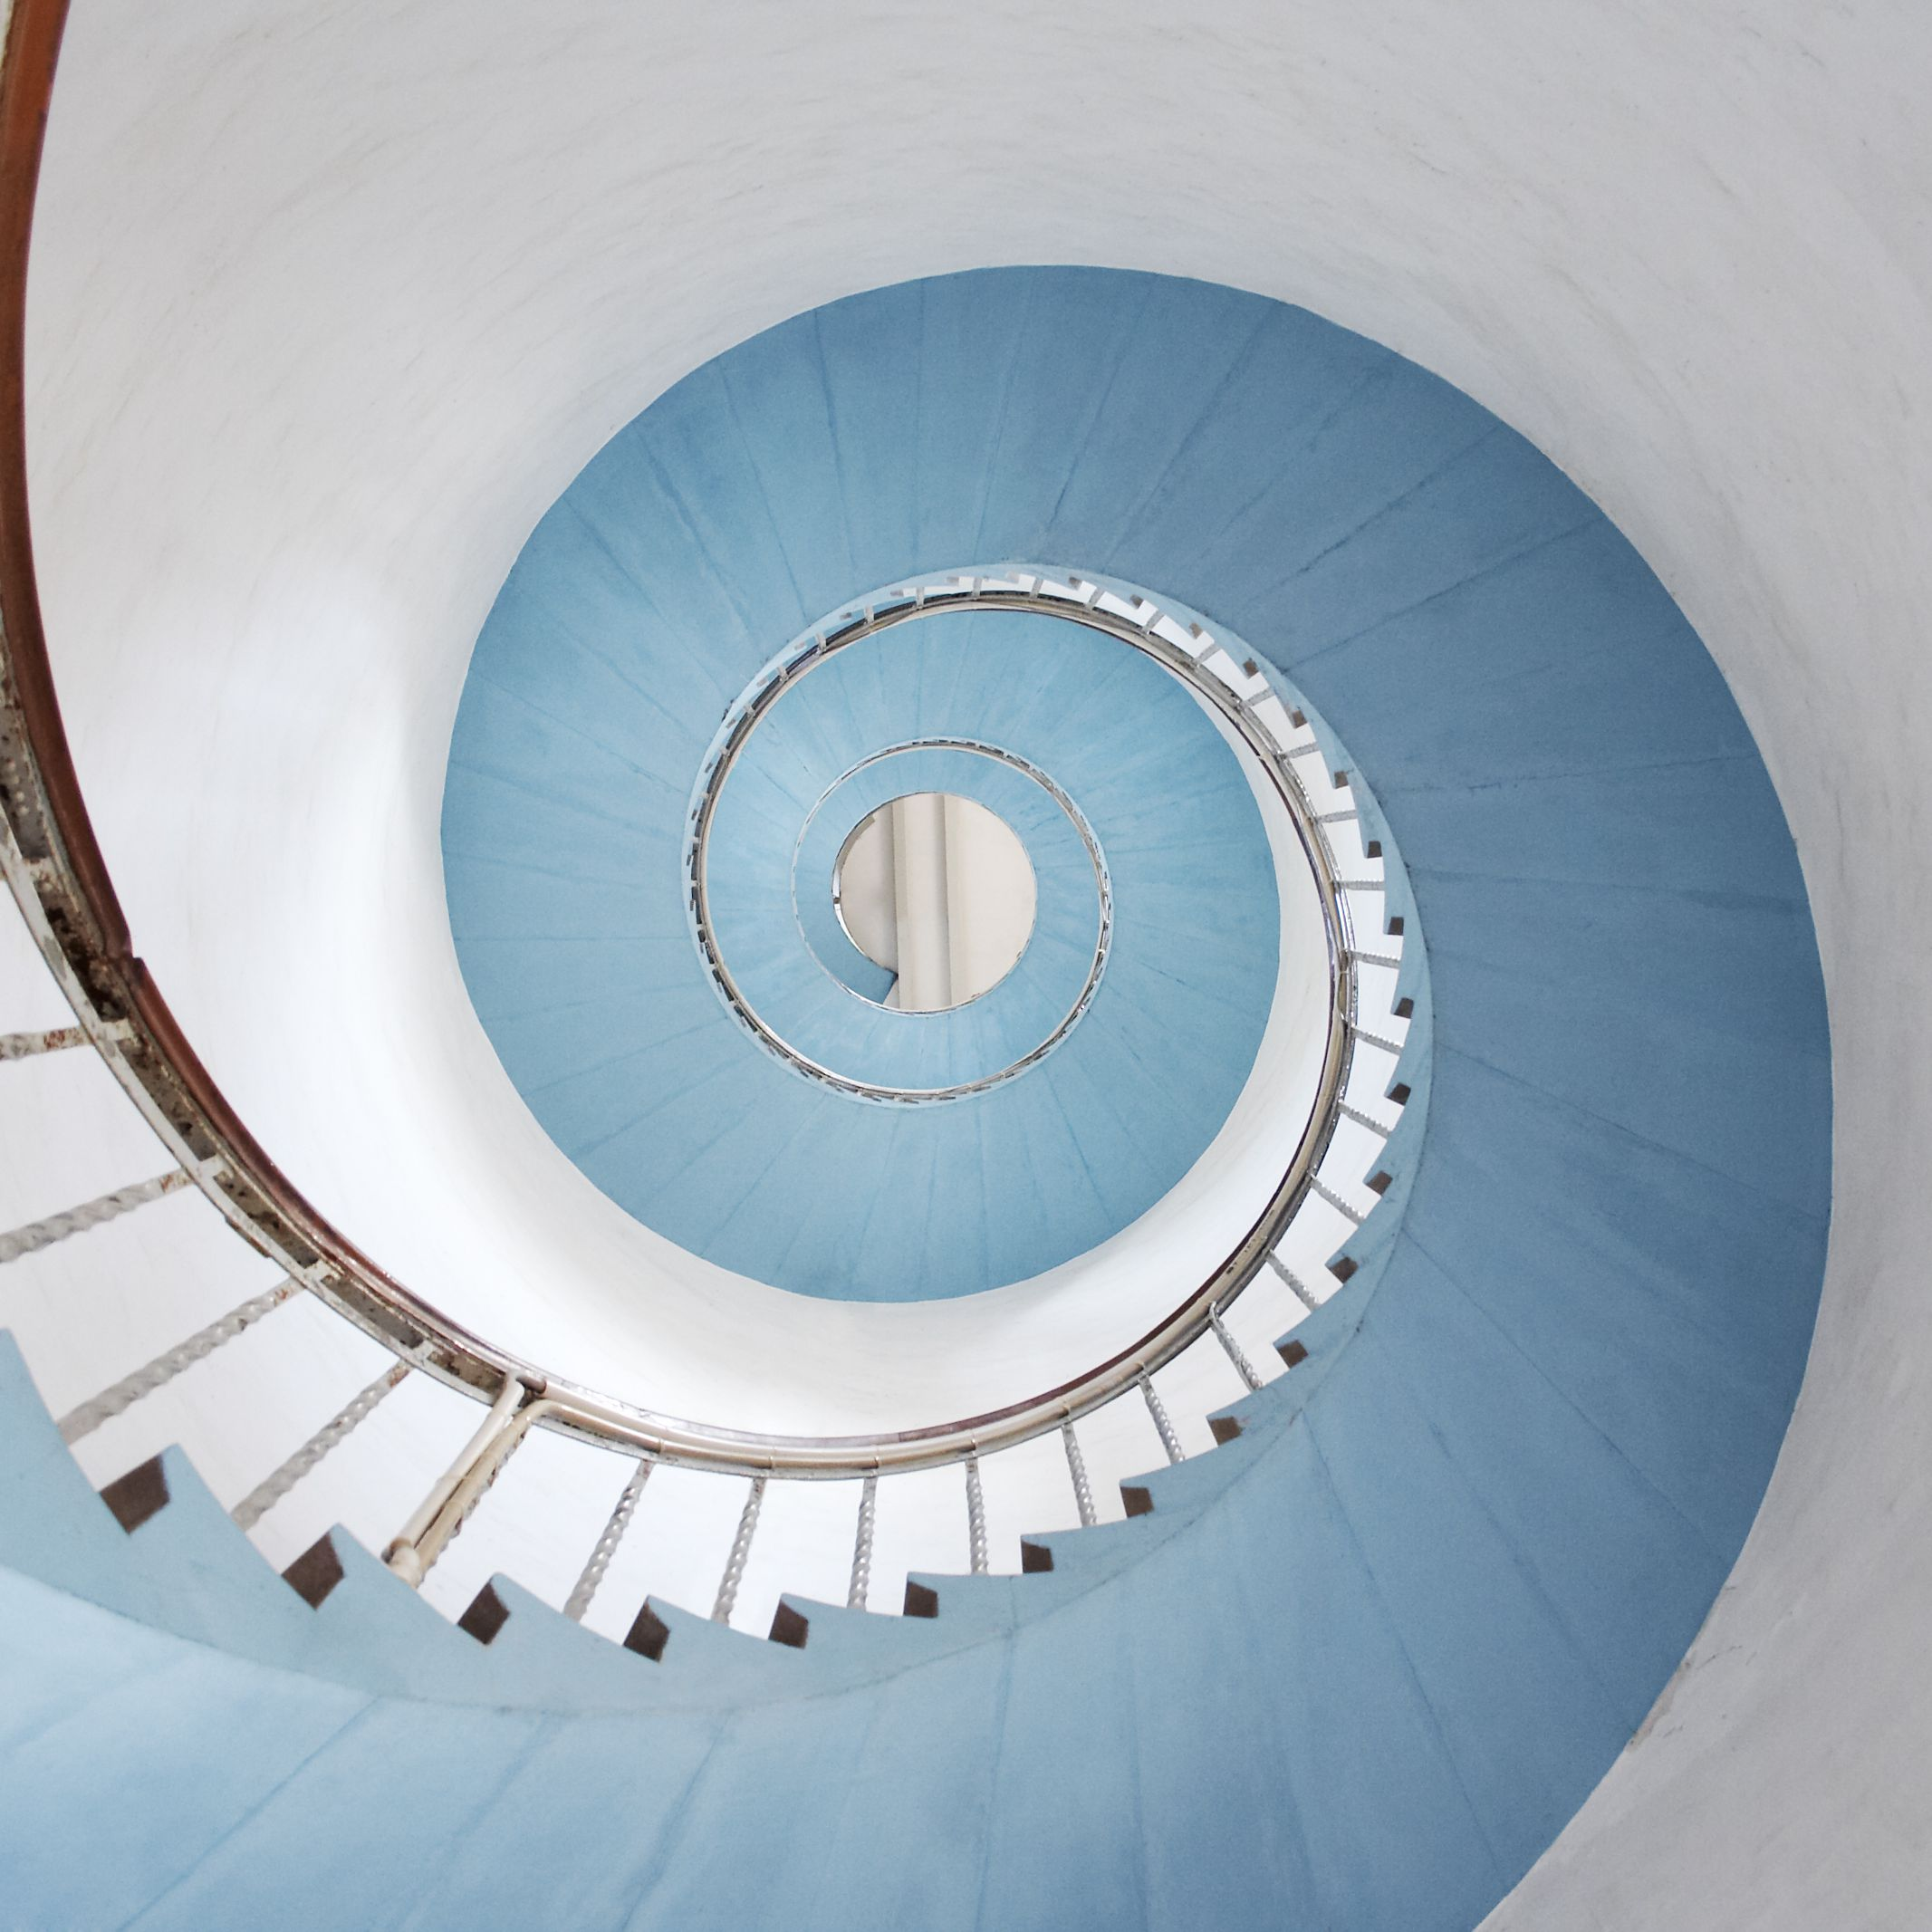 What Is a Health Insurance Death Spiral?